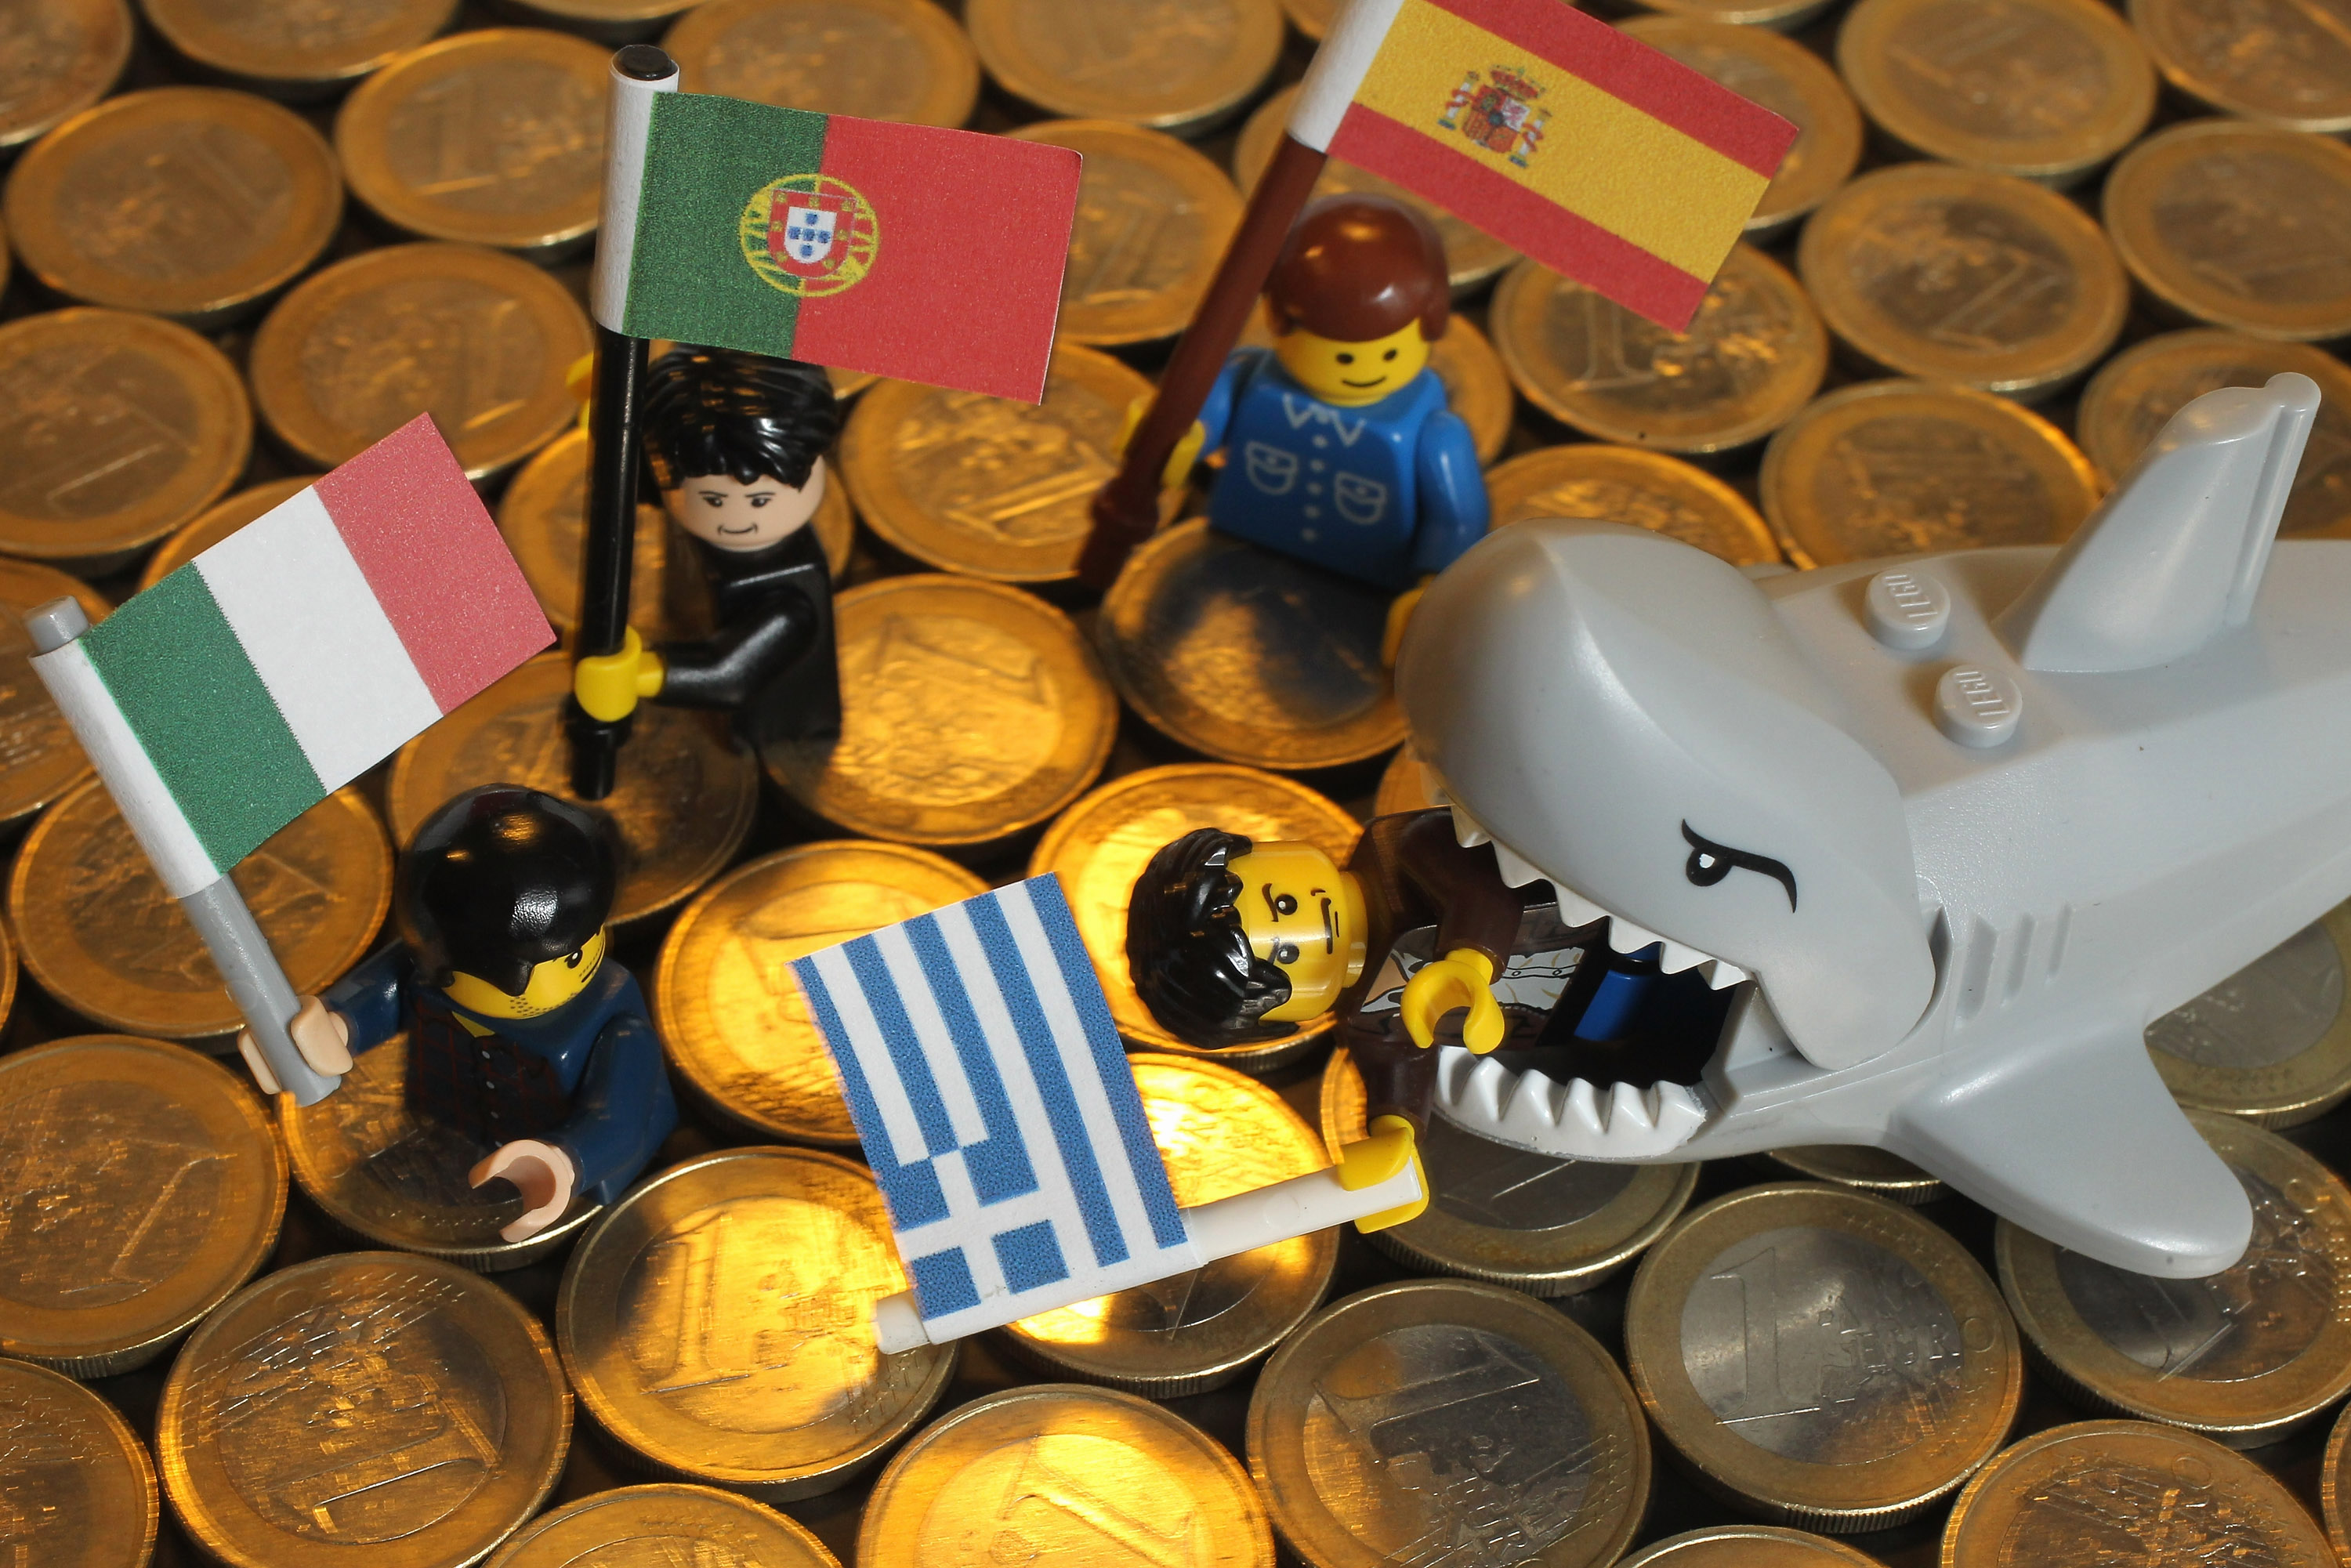 BERLIN, GERMANY - SEPTEMBER 27: In this photo illustration a Lego shark chomps down on a Lego figure holding a Greek flag as other figures holding an Italian (L), Portuguese (C) and Spanish flag look on over a sea of Euro coins on September 27, 2011 in Berlin, Germany. Europe is continuing to wrestle with the ominous prospect of a Greek debt default that many fear could spread panic and push the already fragile economies of Italy, Portugal and Spain into a Eurozone crisis with global repercussions.  (Photo by Sean Gallup/Getty Images)